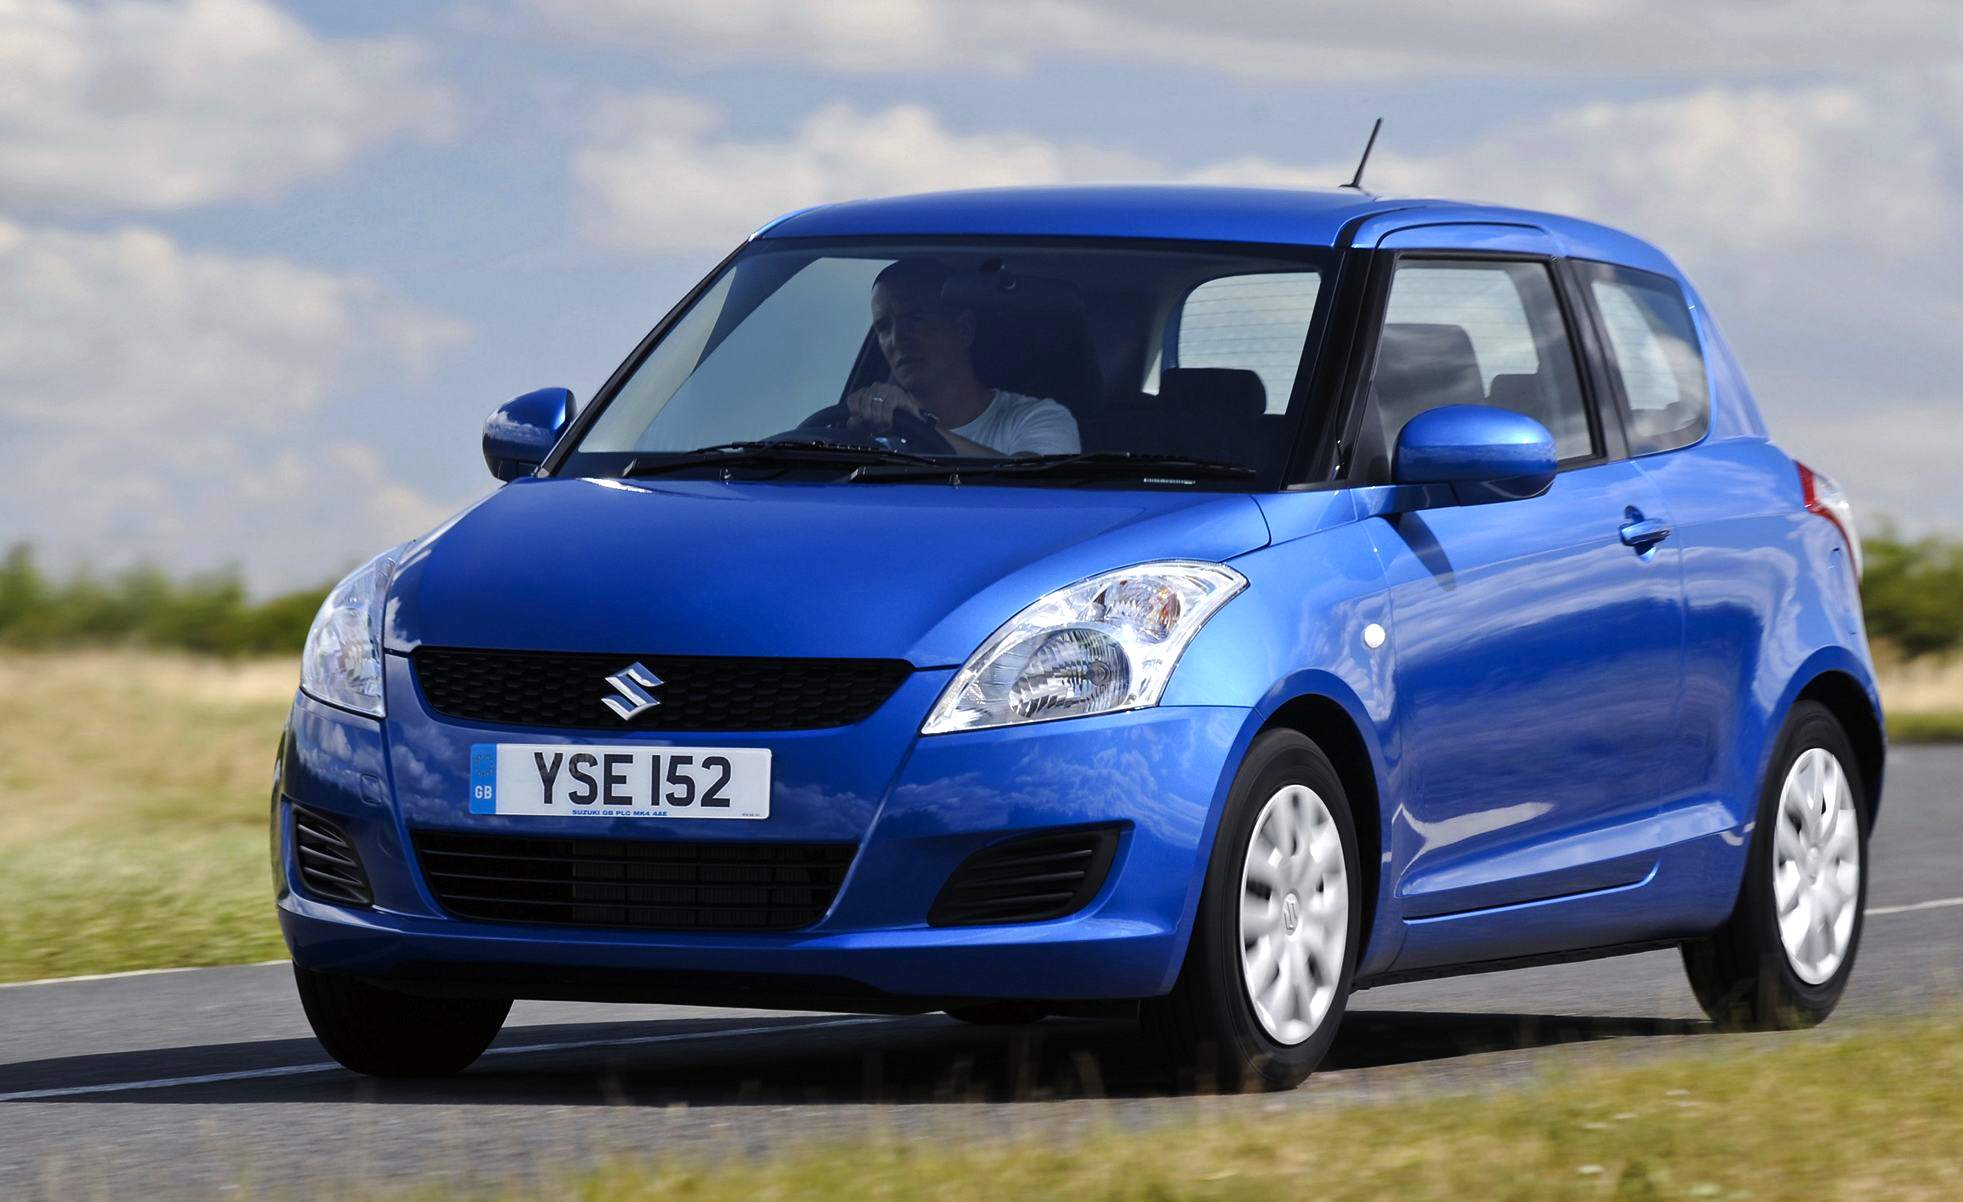 ... Matt's blog » New Zealand February 2011: Suzuki Swift takes the lead